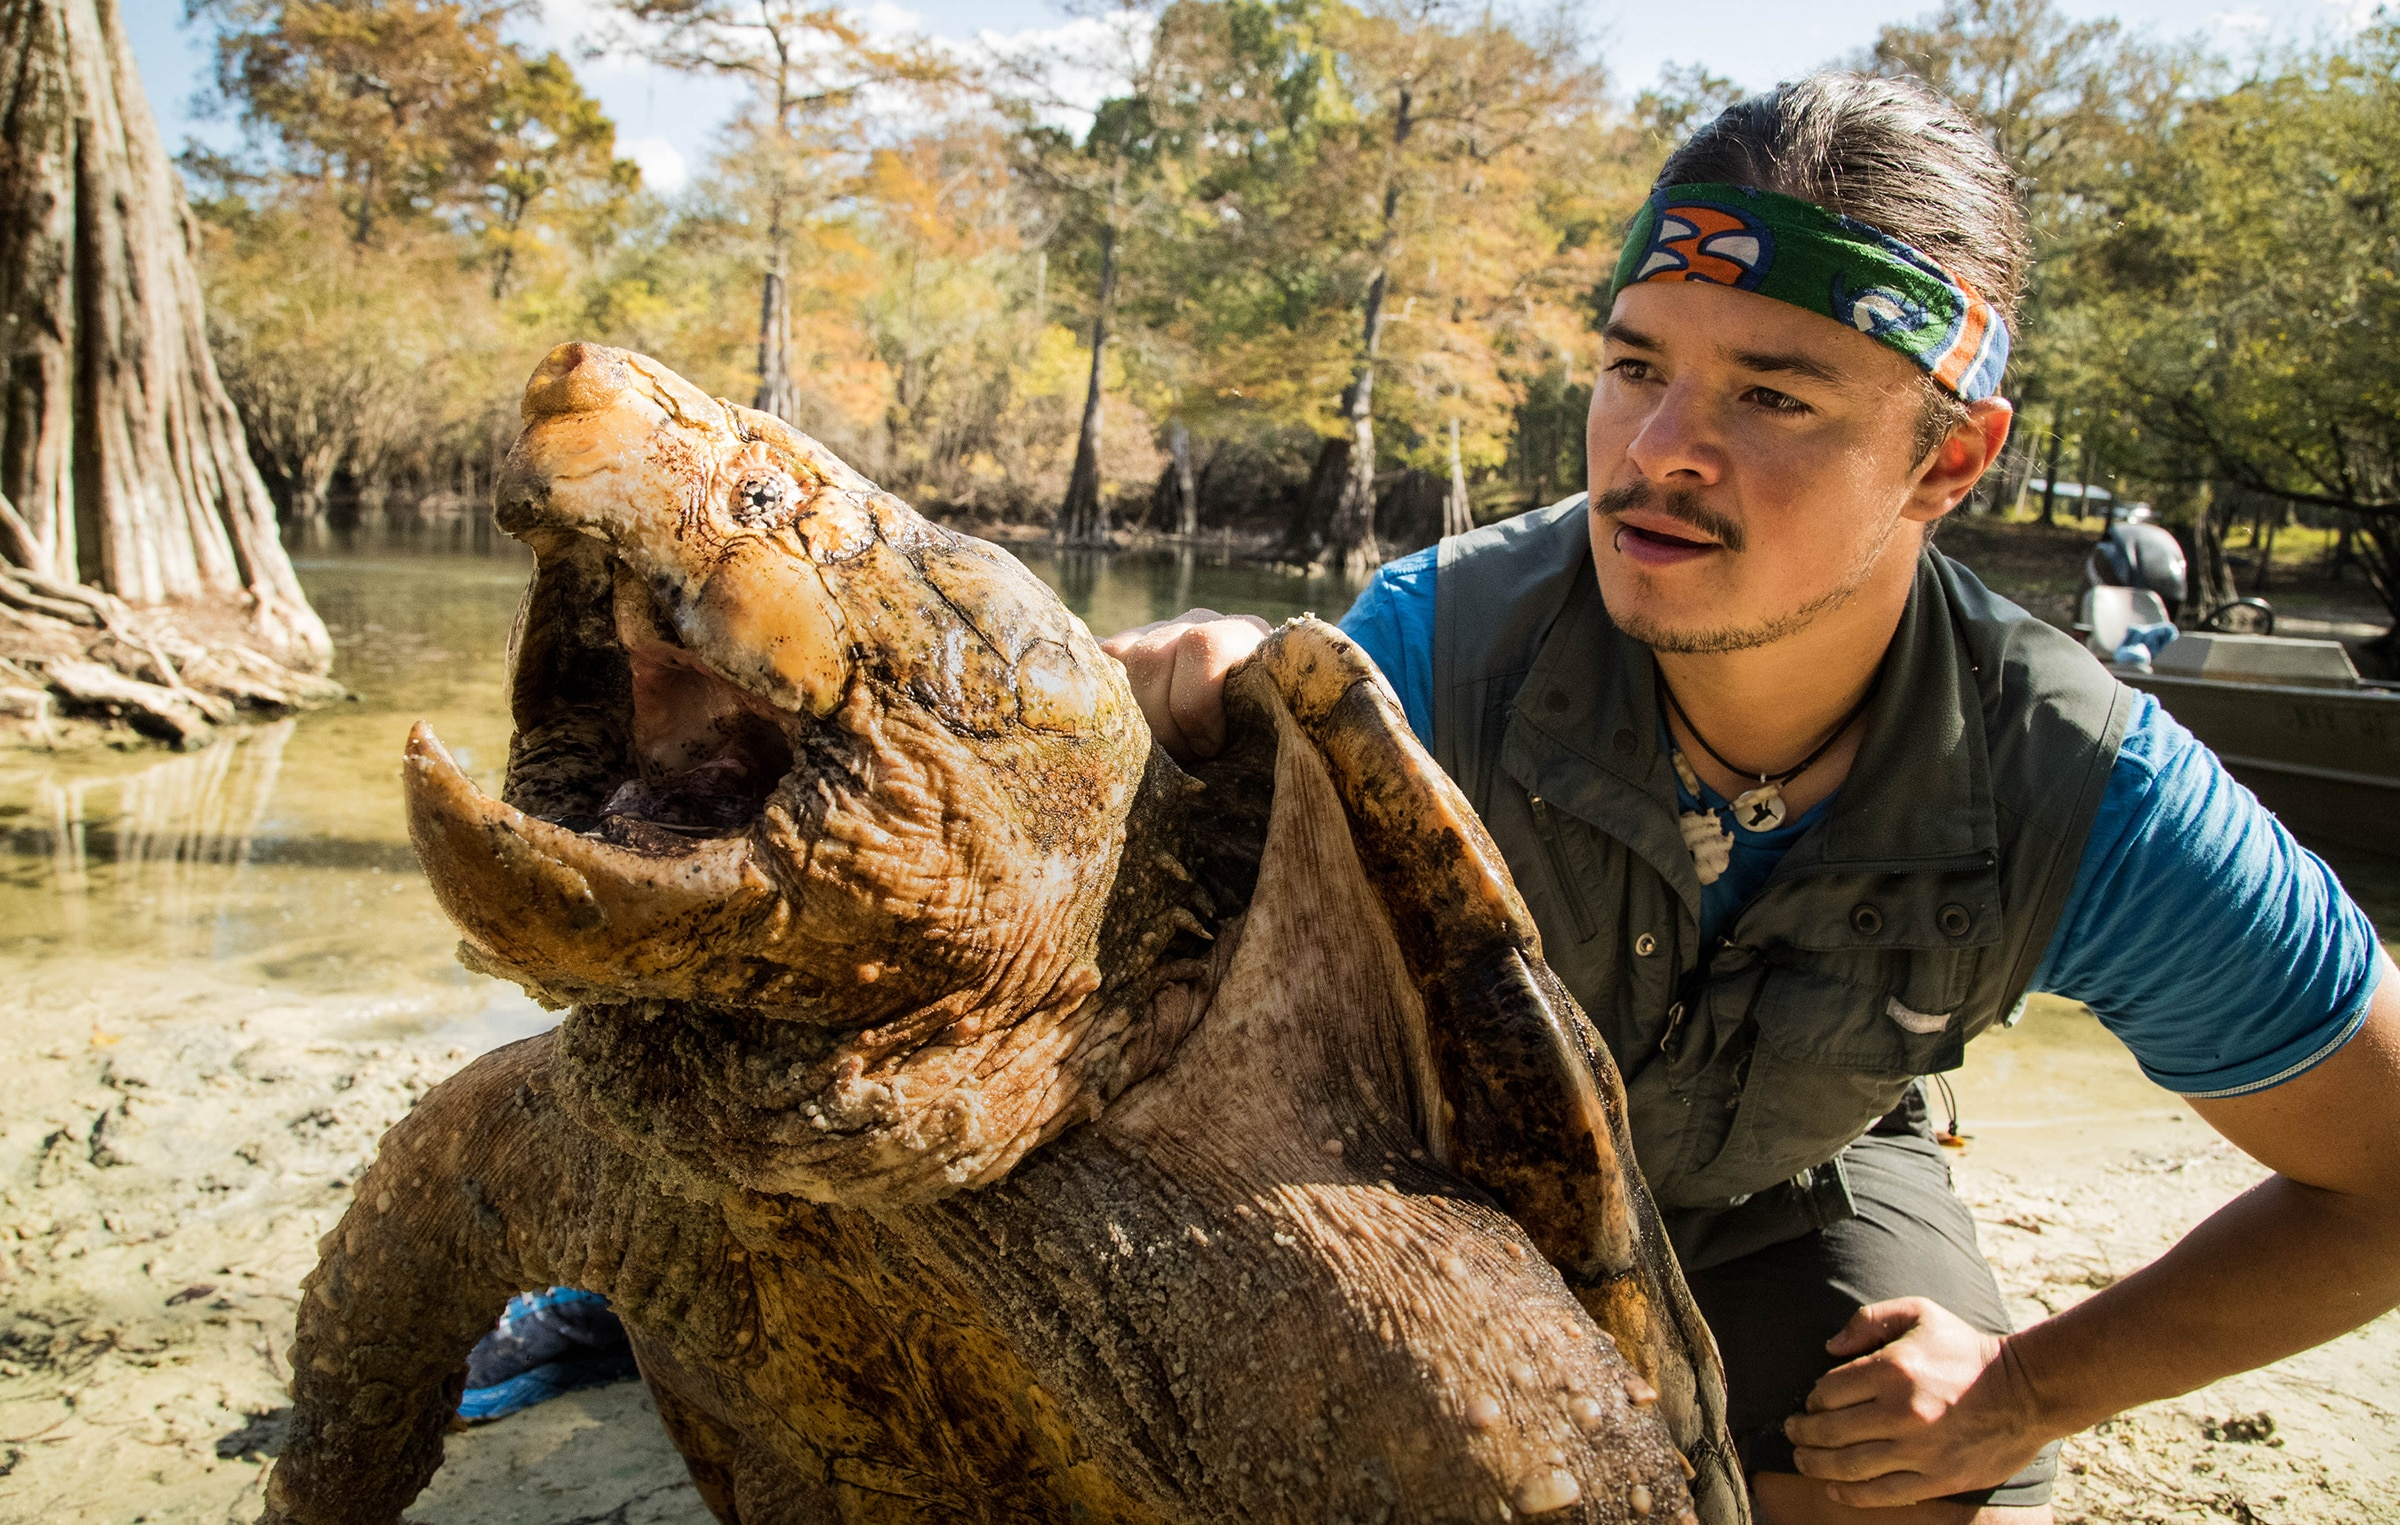 """Nat Geo filmmaker Filipe DeAndrade gets up close with a 100-pound alligator snapping turtle found with IFAS researchers on the Suwannee River. Admiring the creature's strength and design, DeAndrade jokes that the turtle's 1,000-pounds-per-square-inch jaw pressure """"is capable of circumcising a dinosaur!"""""""